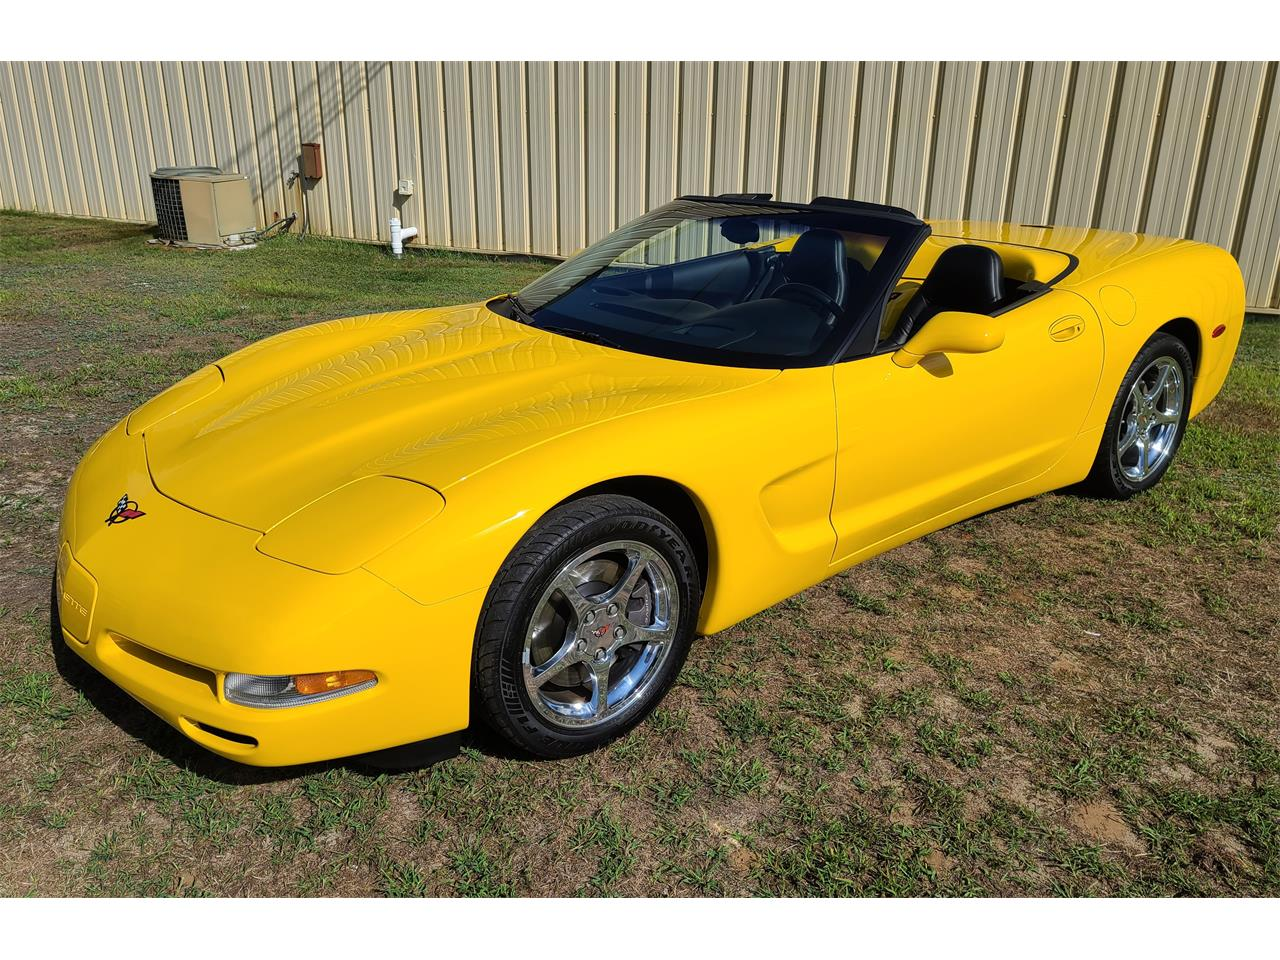 2002 Chevrolet Corvette (CC-1387626) for sale in hopedale, Massachusetts